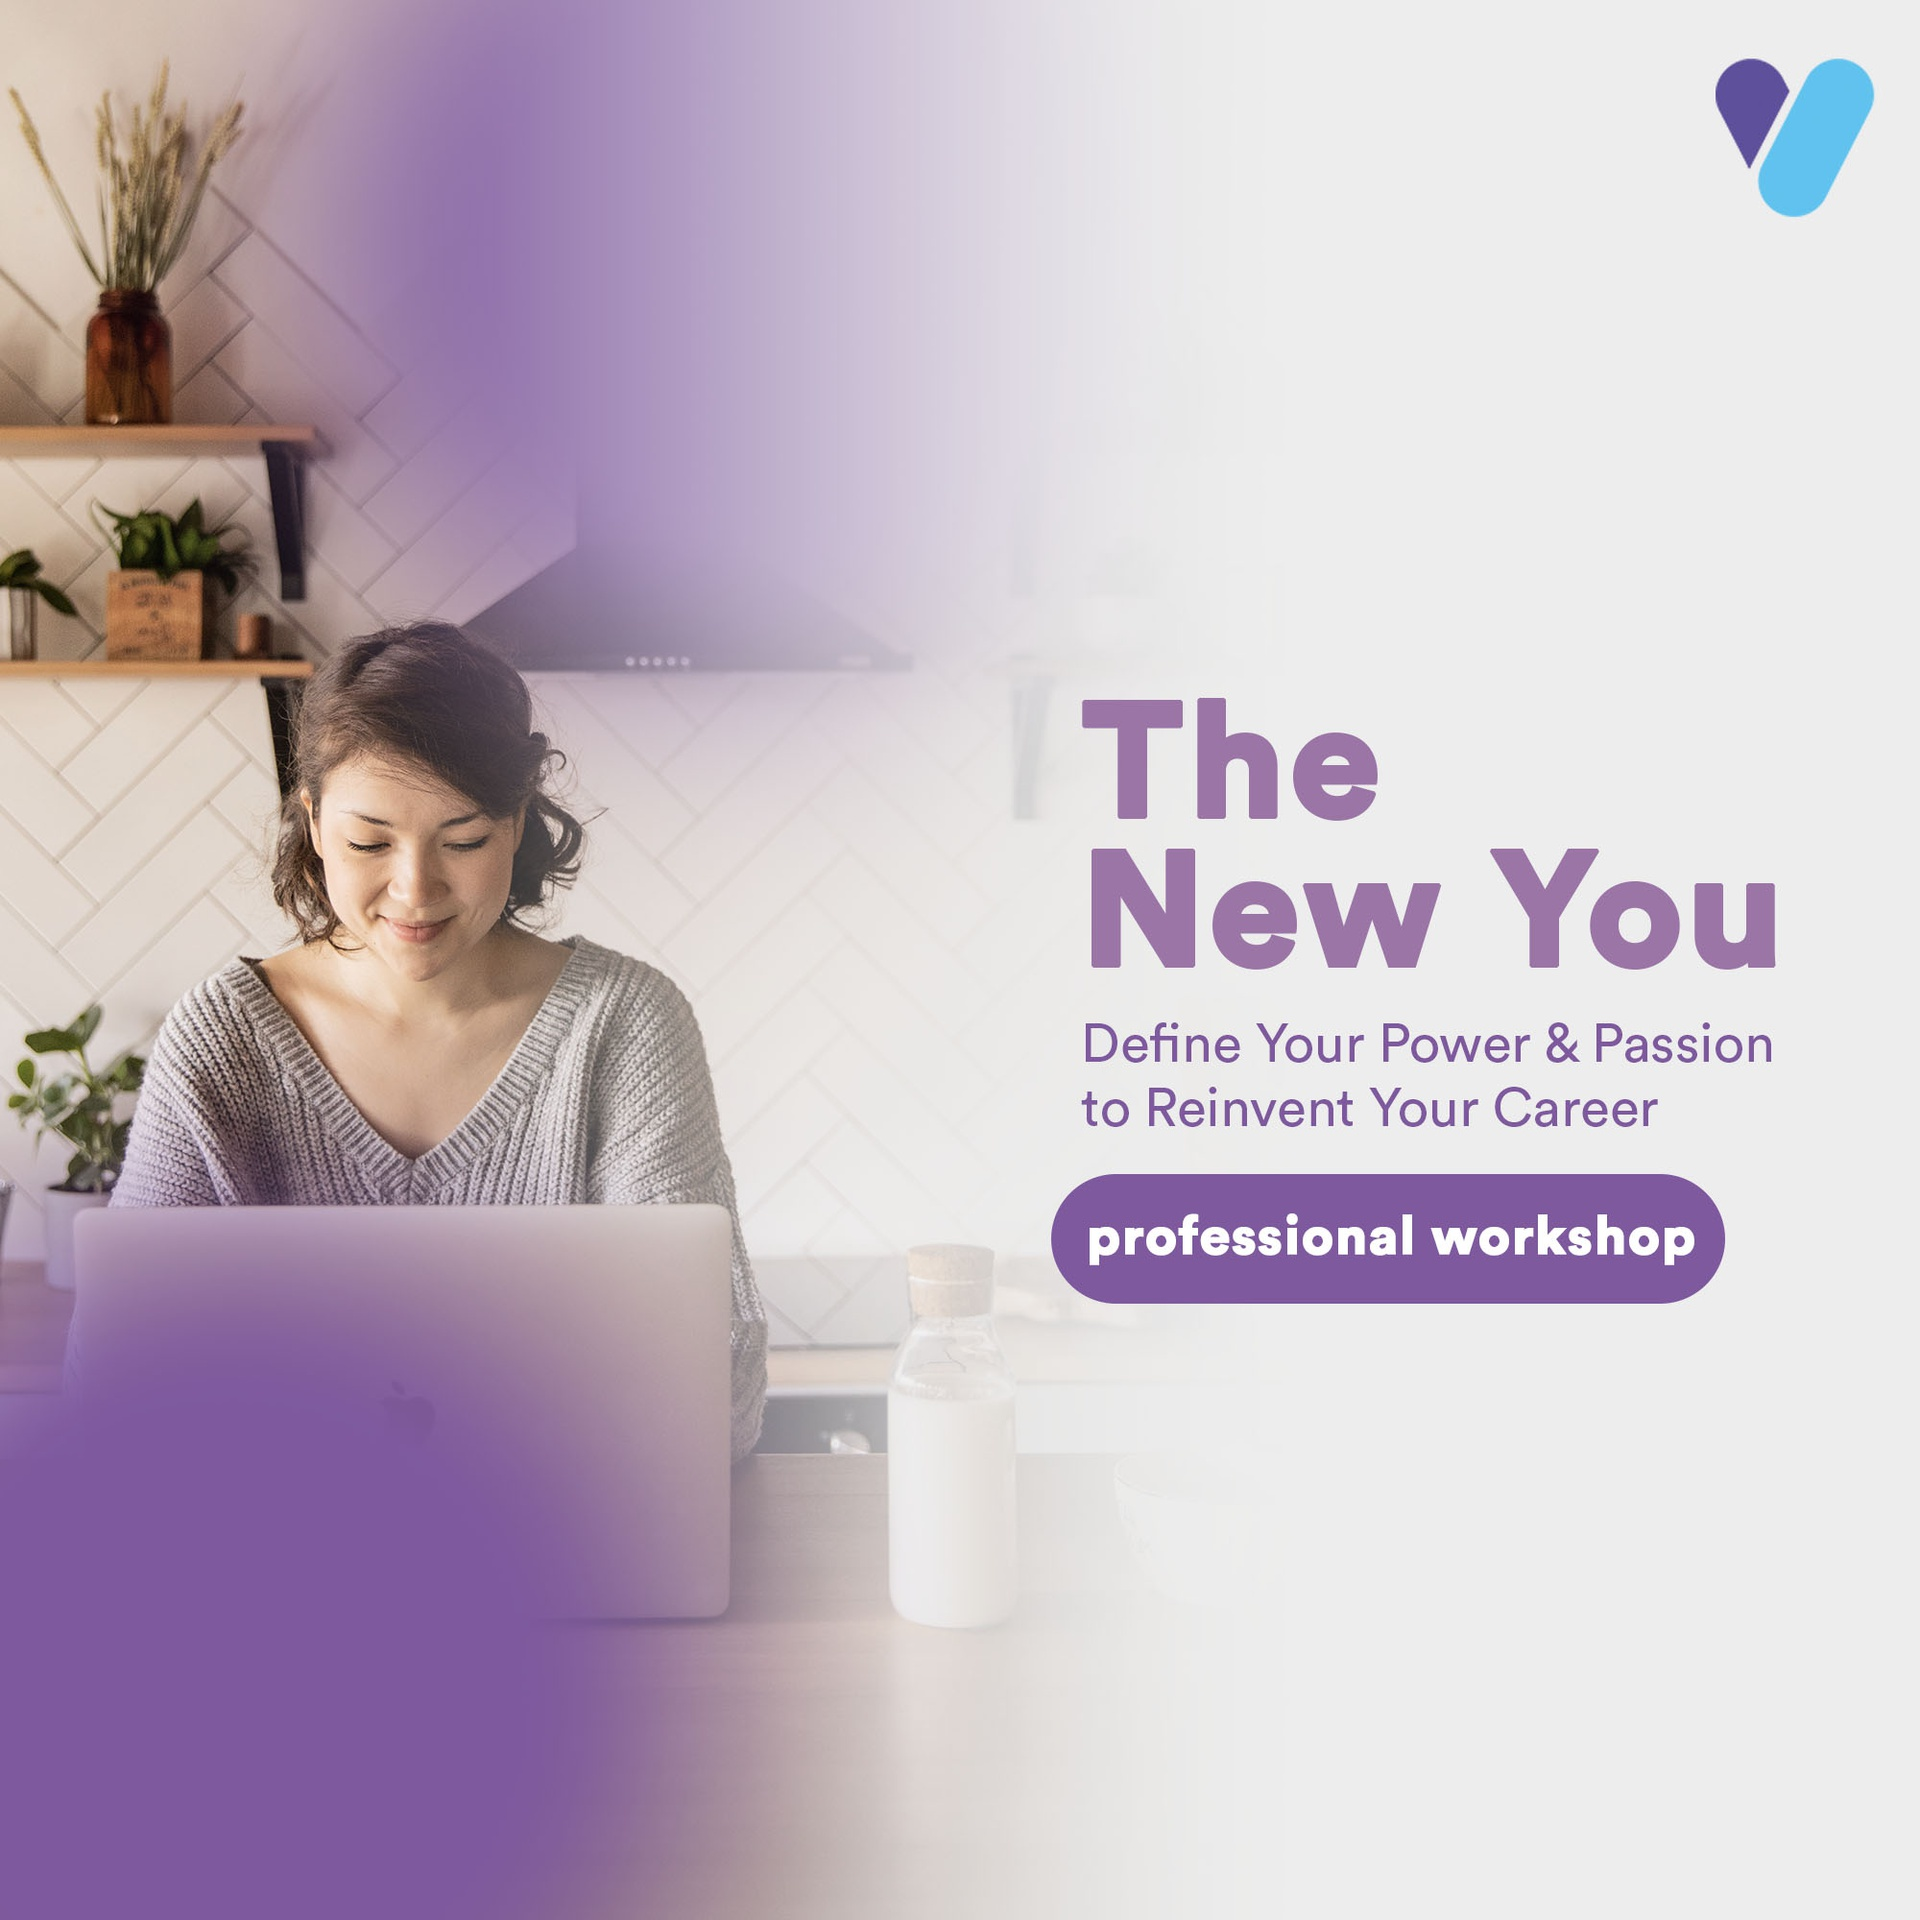 The New You: Define Your Power & Passion to Reinvent Your Career